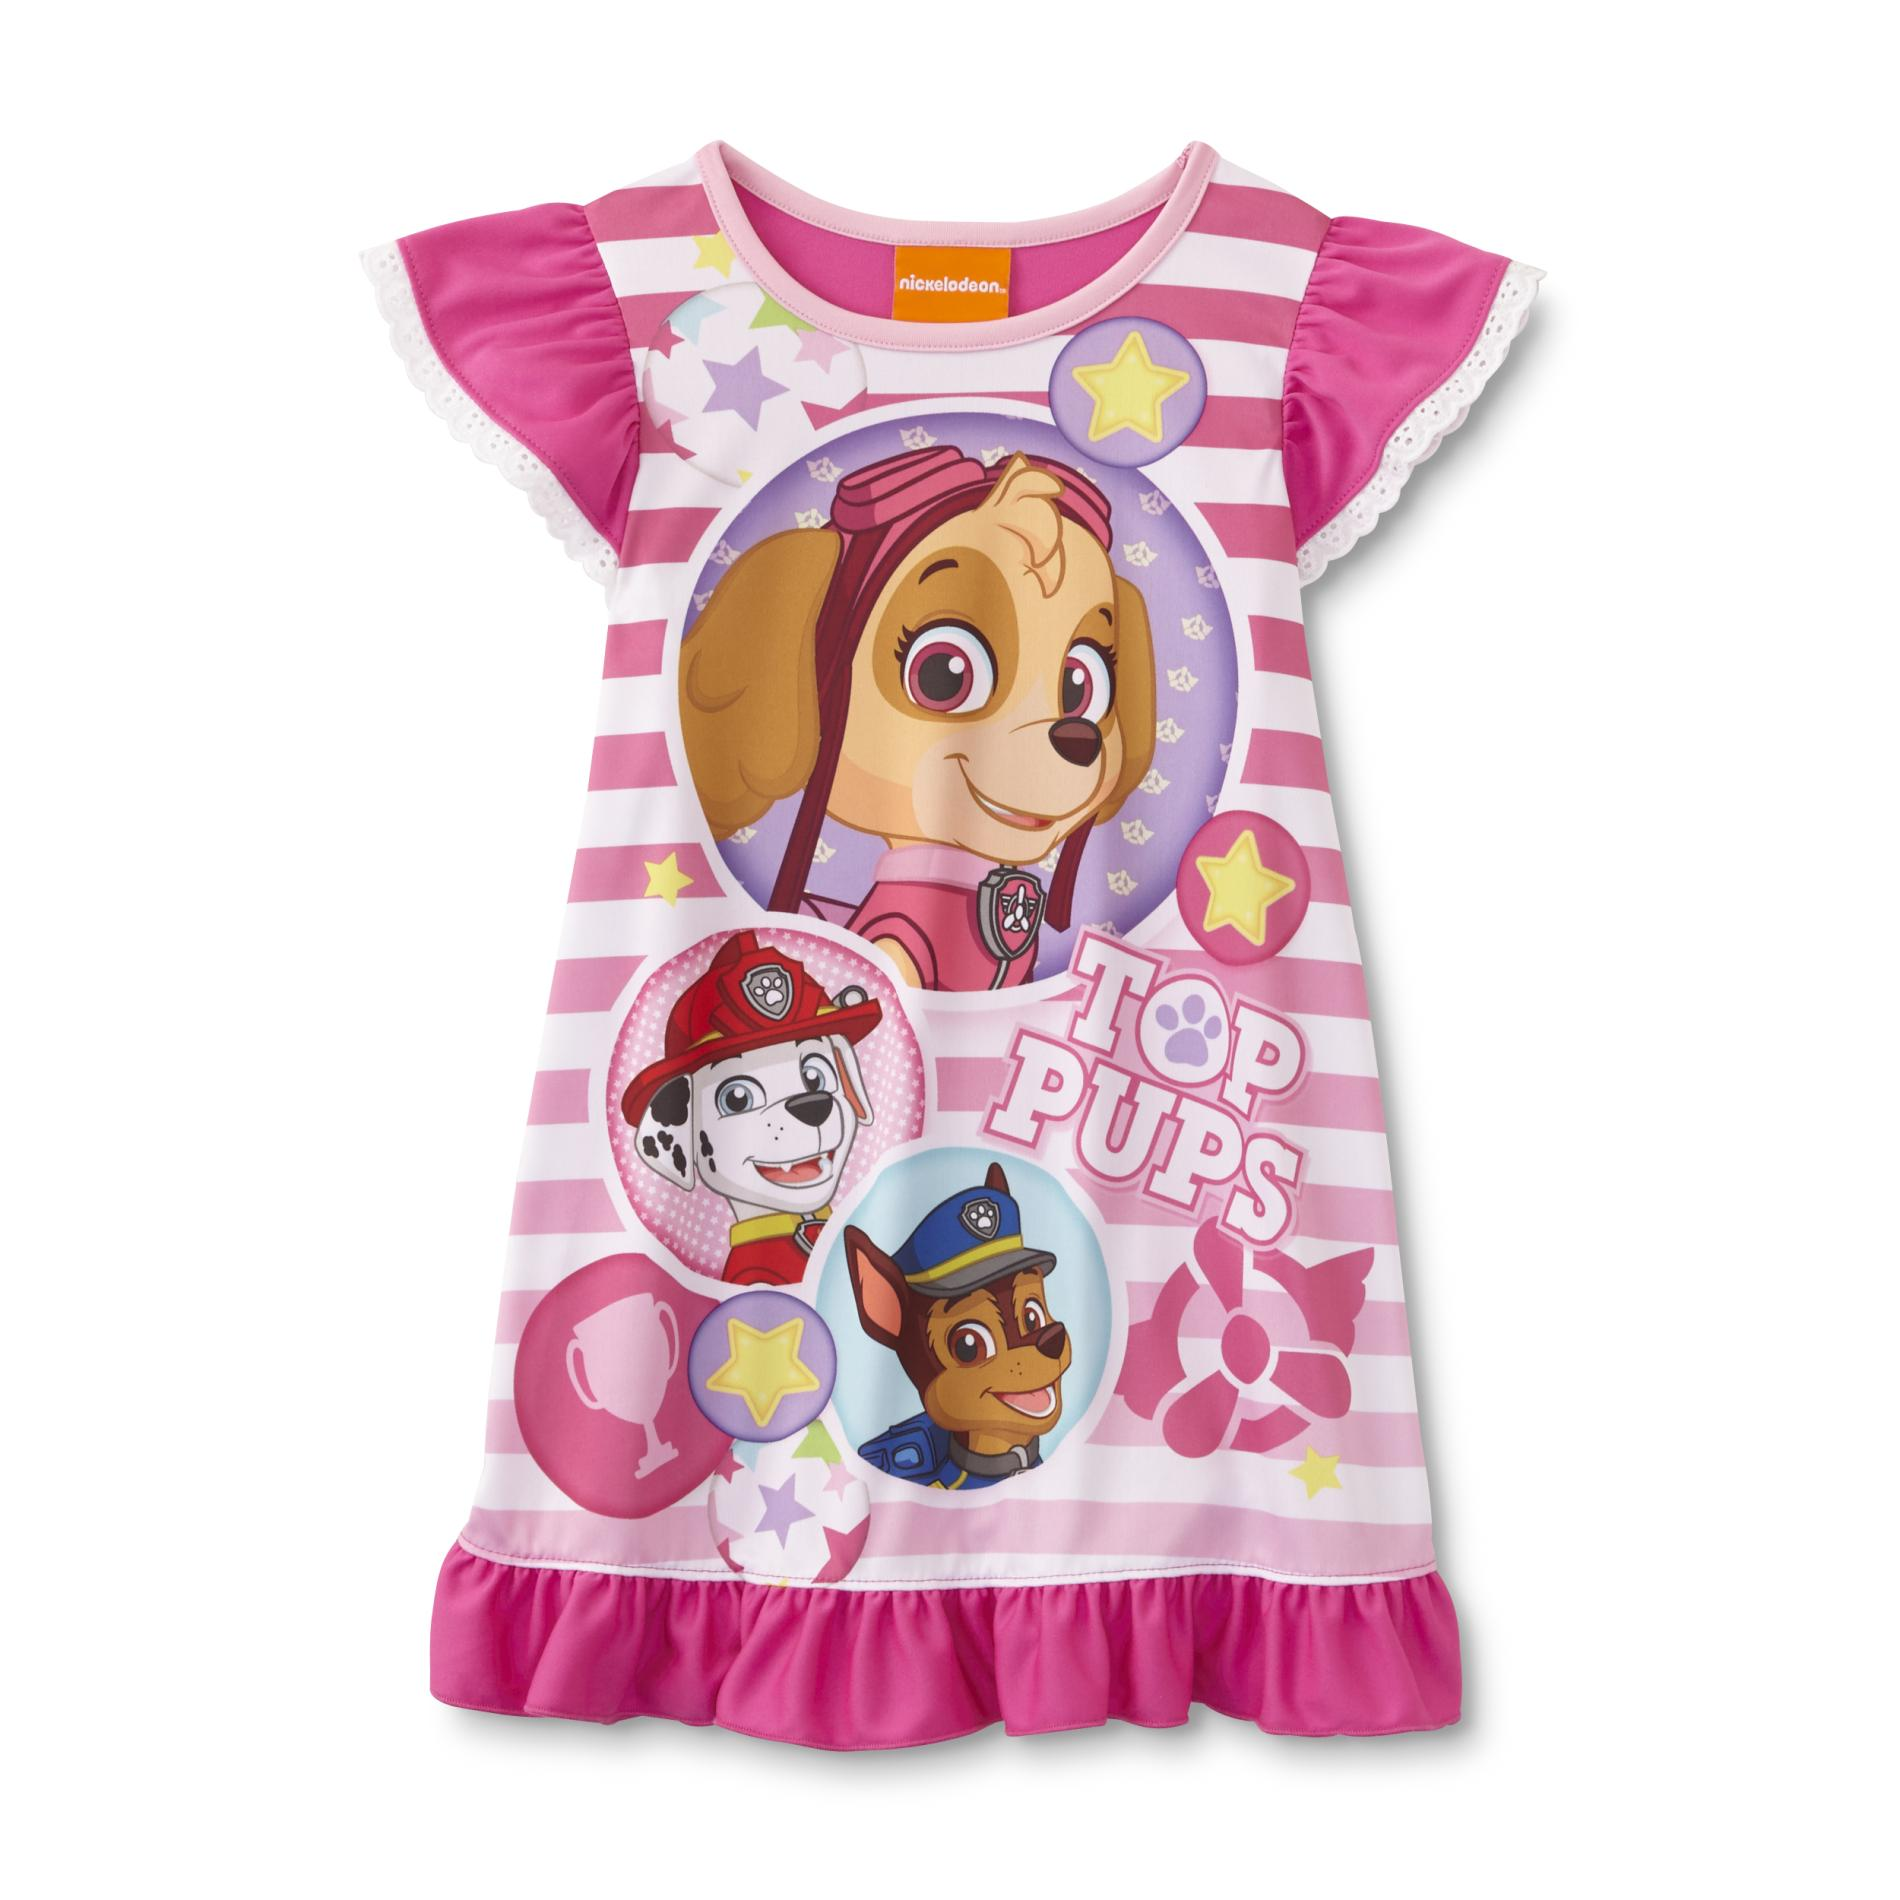 Nickelodeon PAW Patrol Toddler Girl's Nightgown